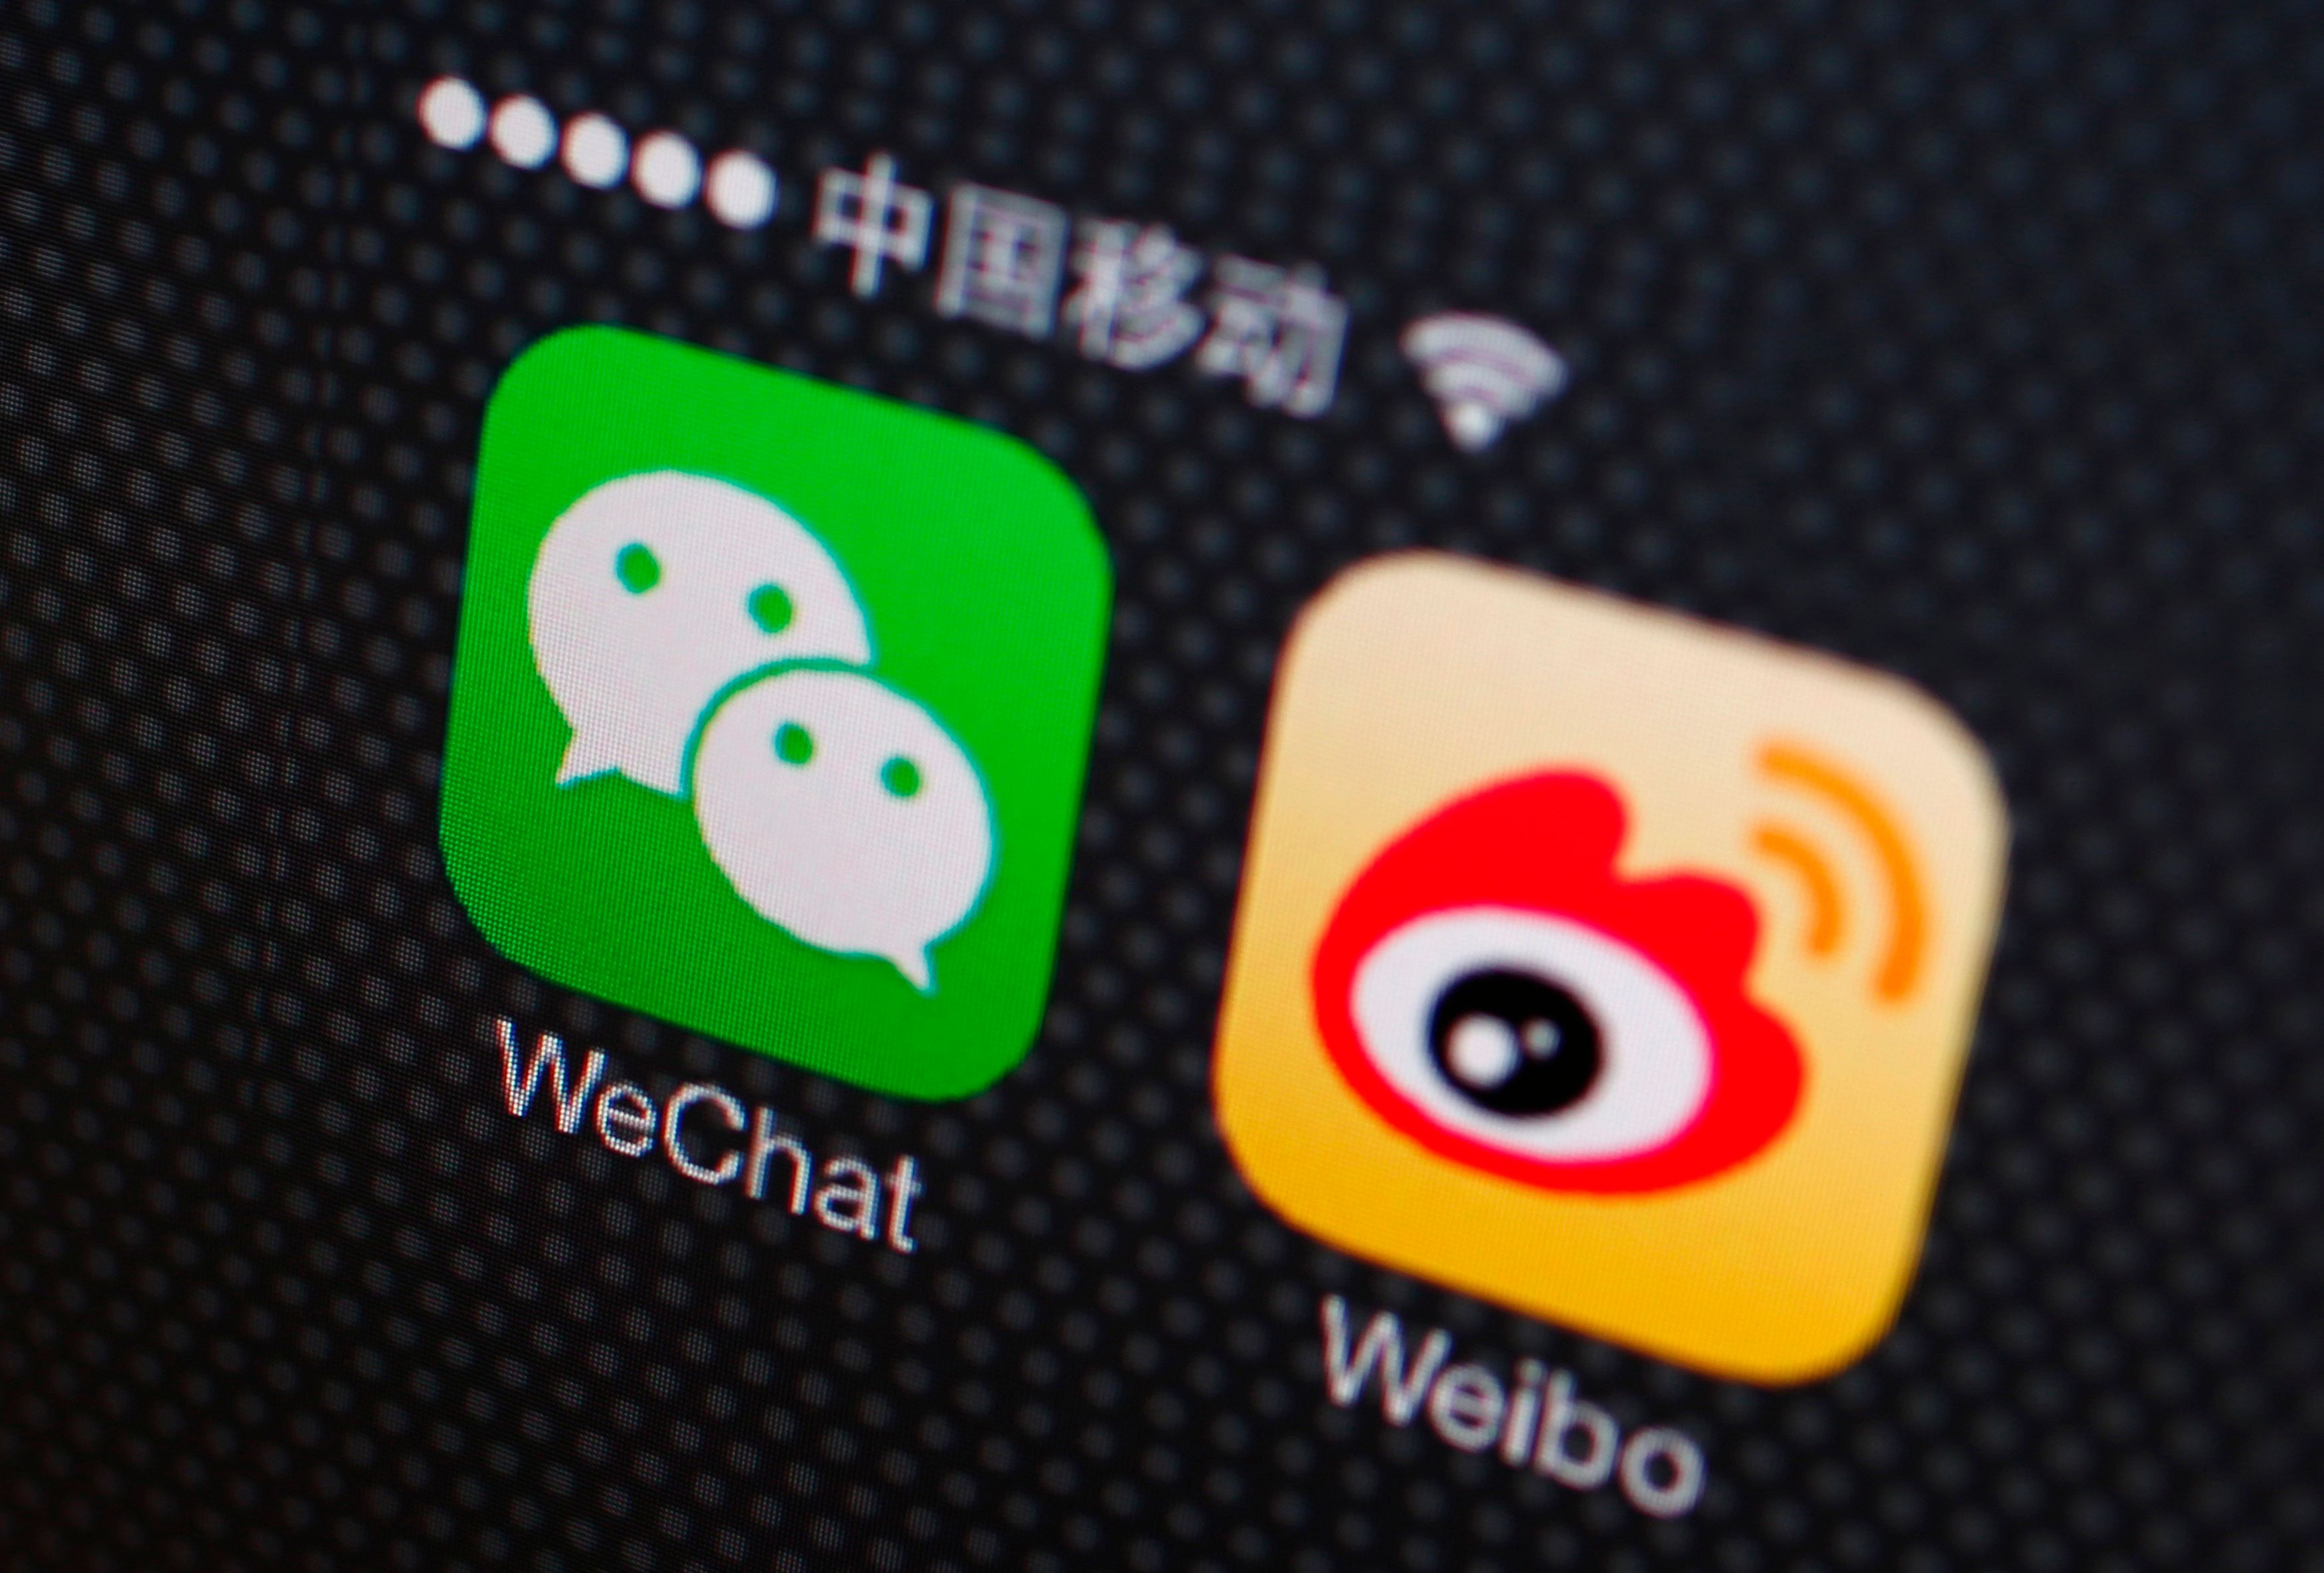 Chinese microblogging platform Weibo to remove content related to homosexuality and violence